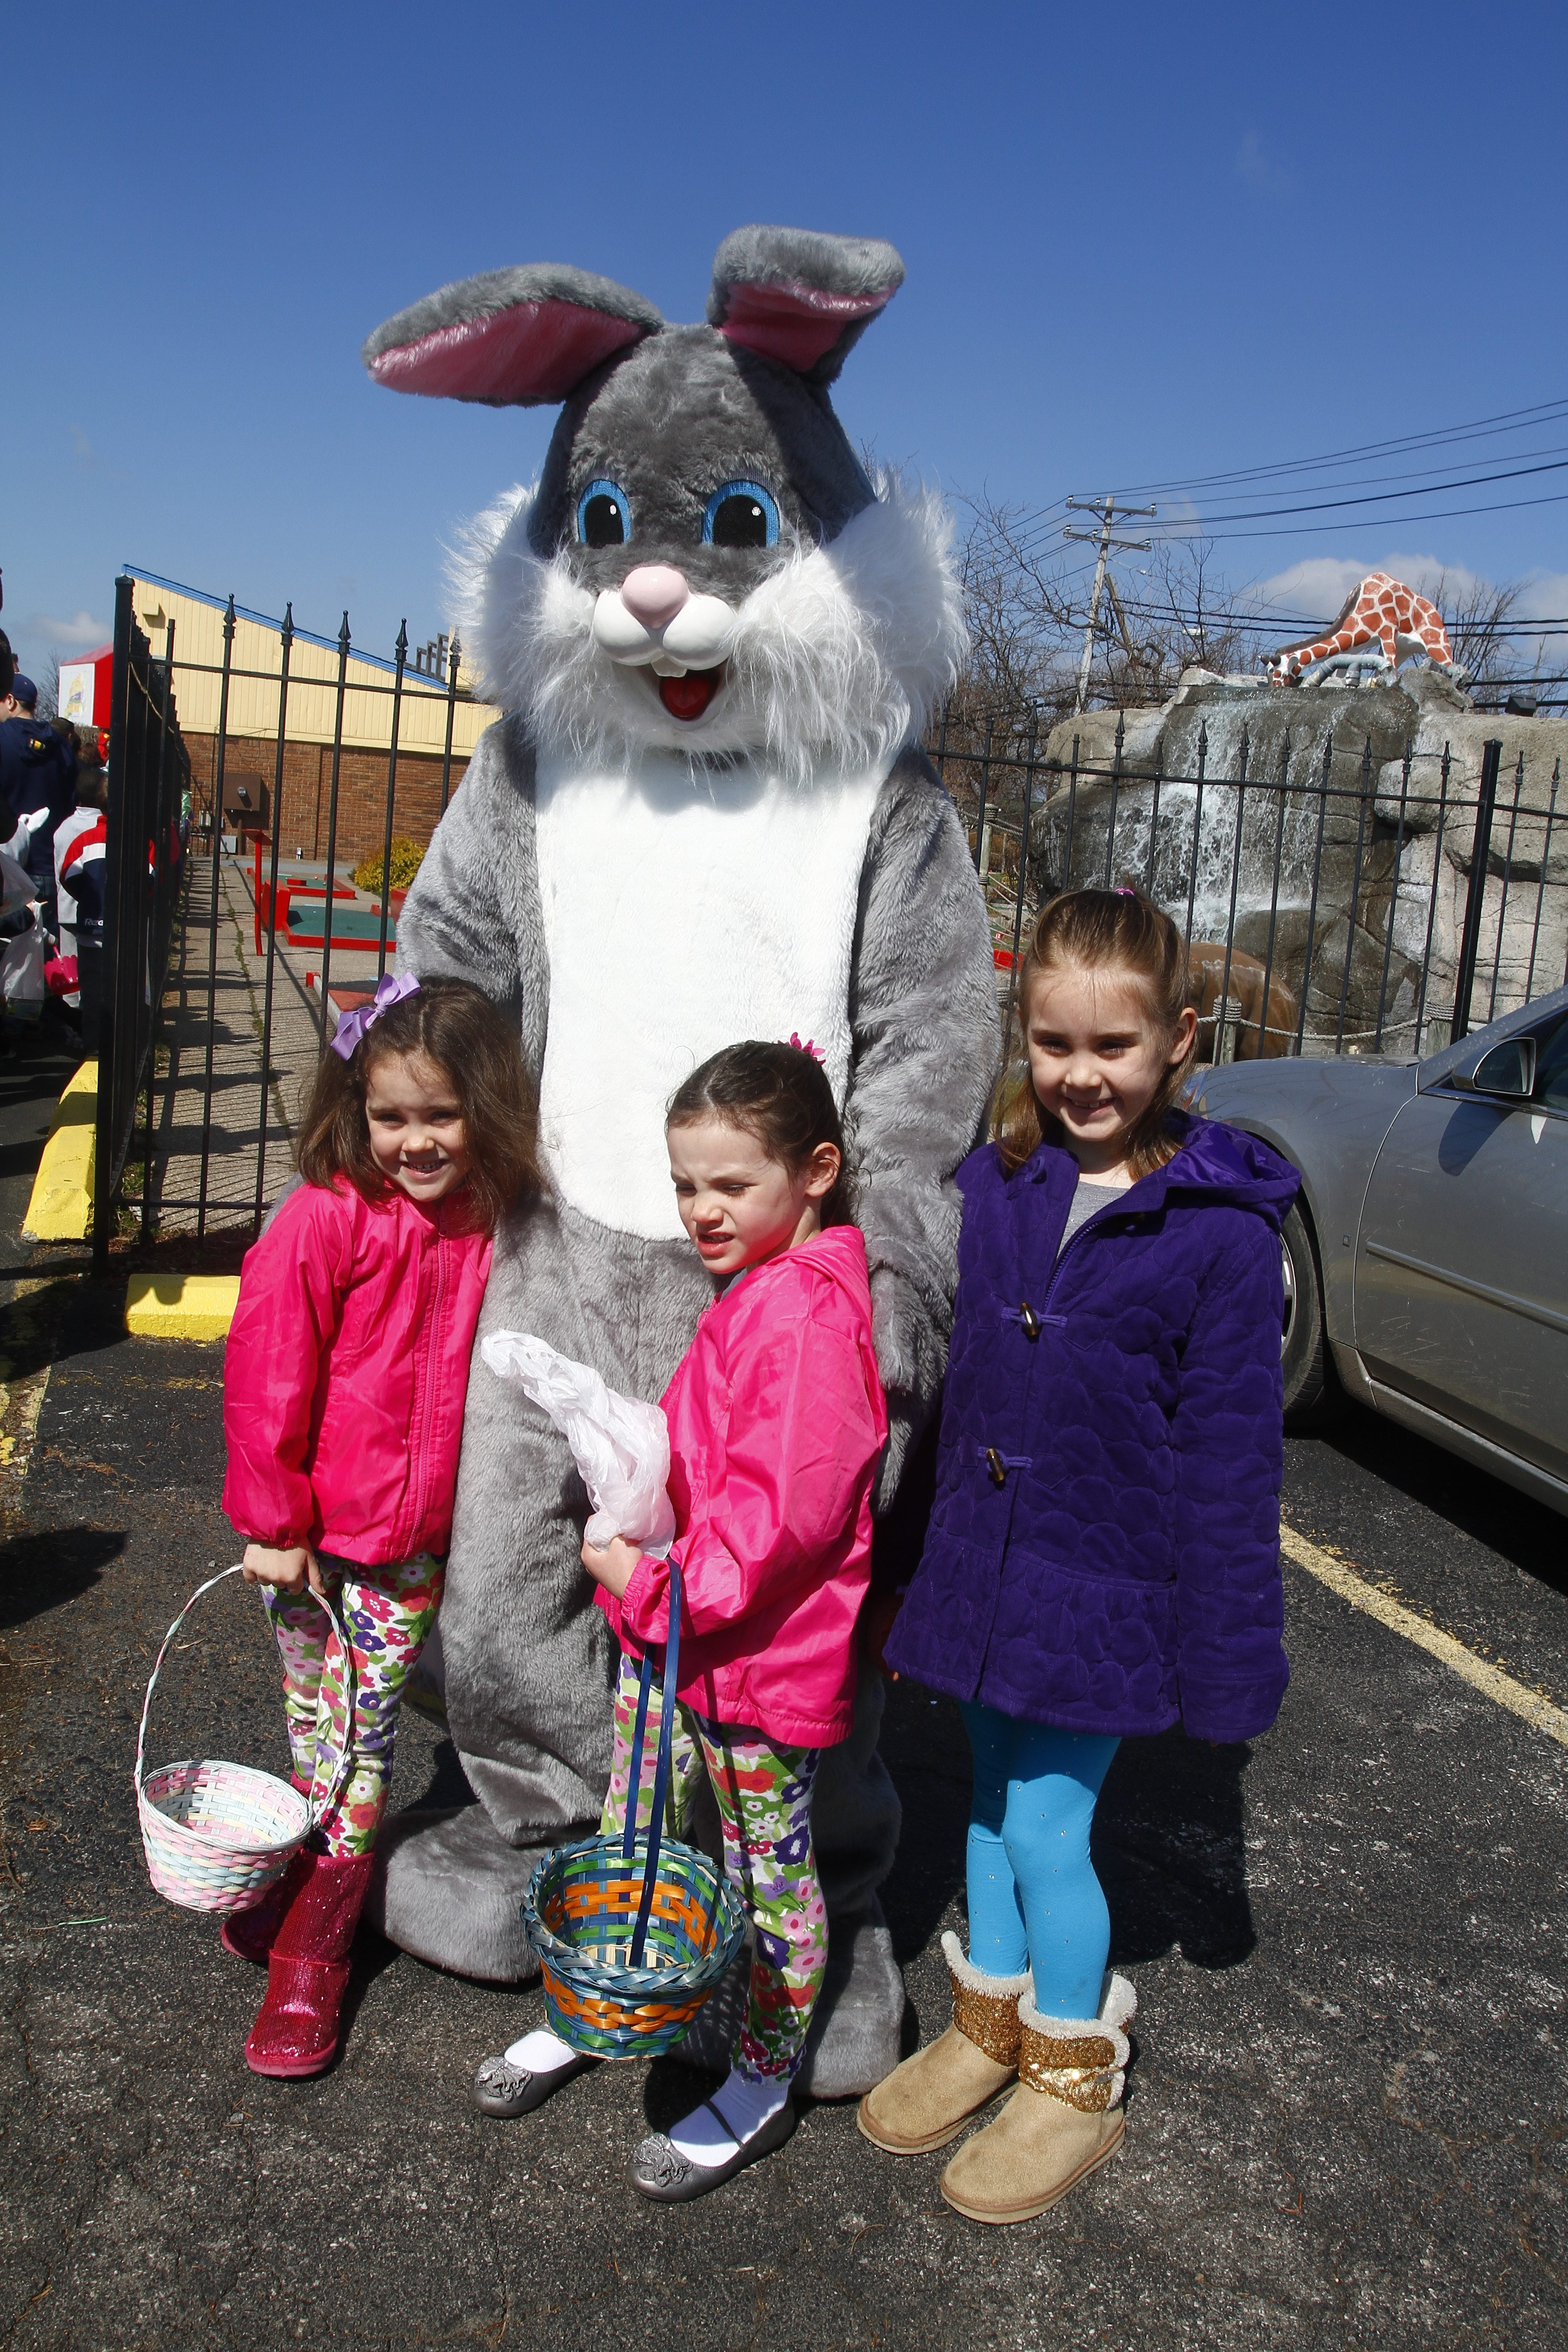 The Easter Bunny greets people in line  at a  Easter Egg Hunt to benefit Variety Club of Buffalo at   Adventure Landing in Town of  Tonawanda, N.Y. on  Saturday, April 19, 2014.   (John Hickey / Buffalo News)